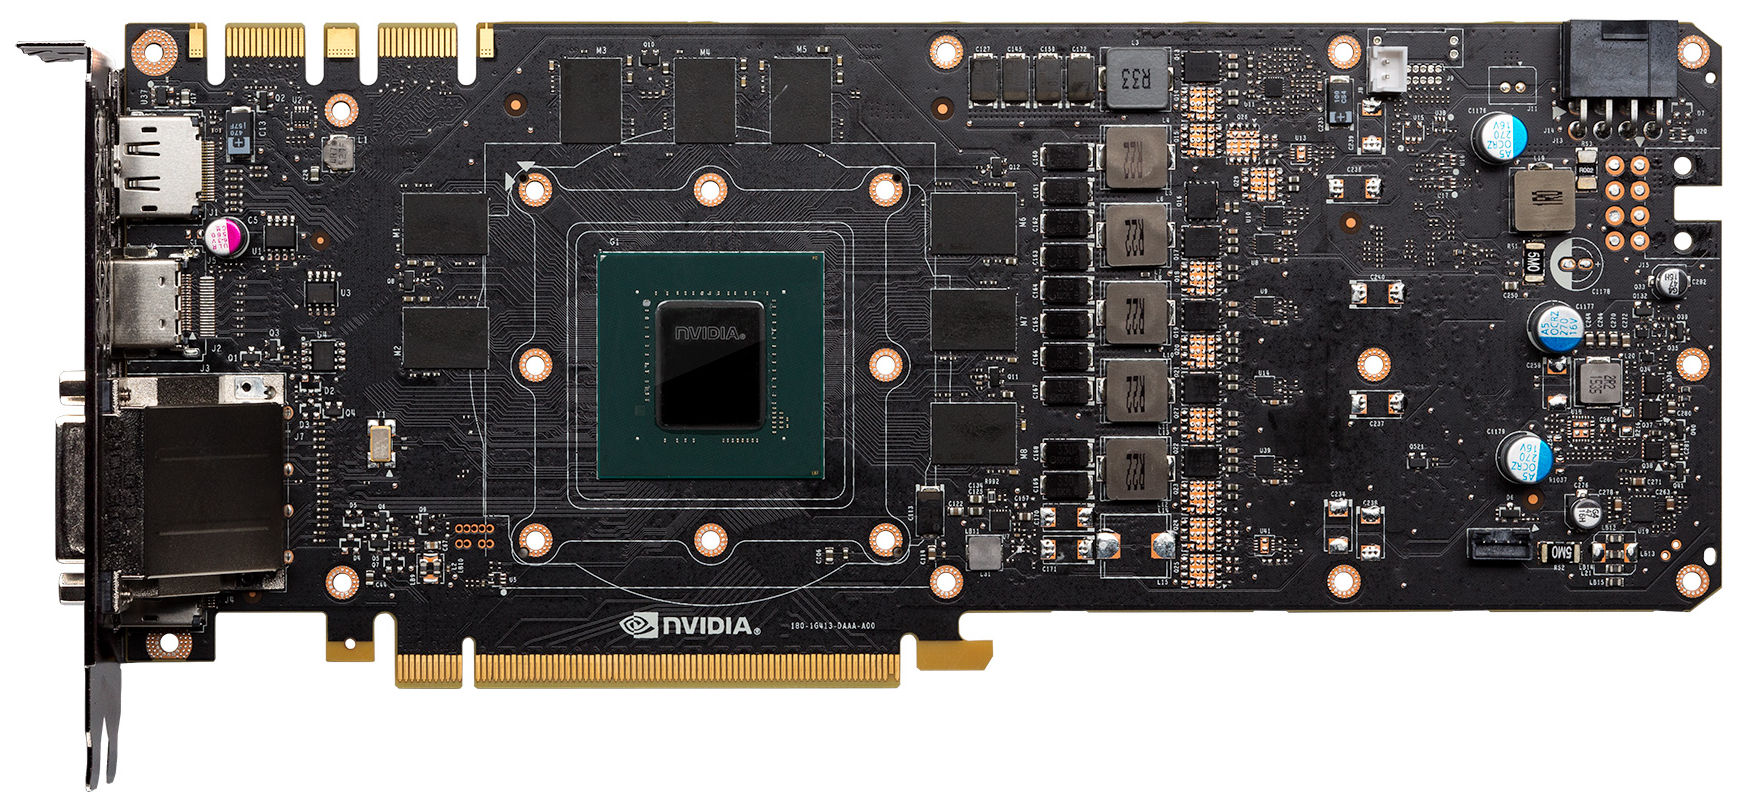 NVIDIA-GeForce-GTX-1080-PCB-1